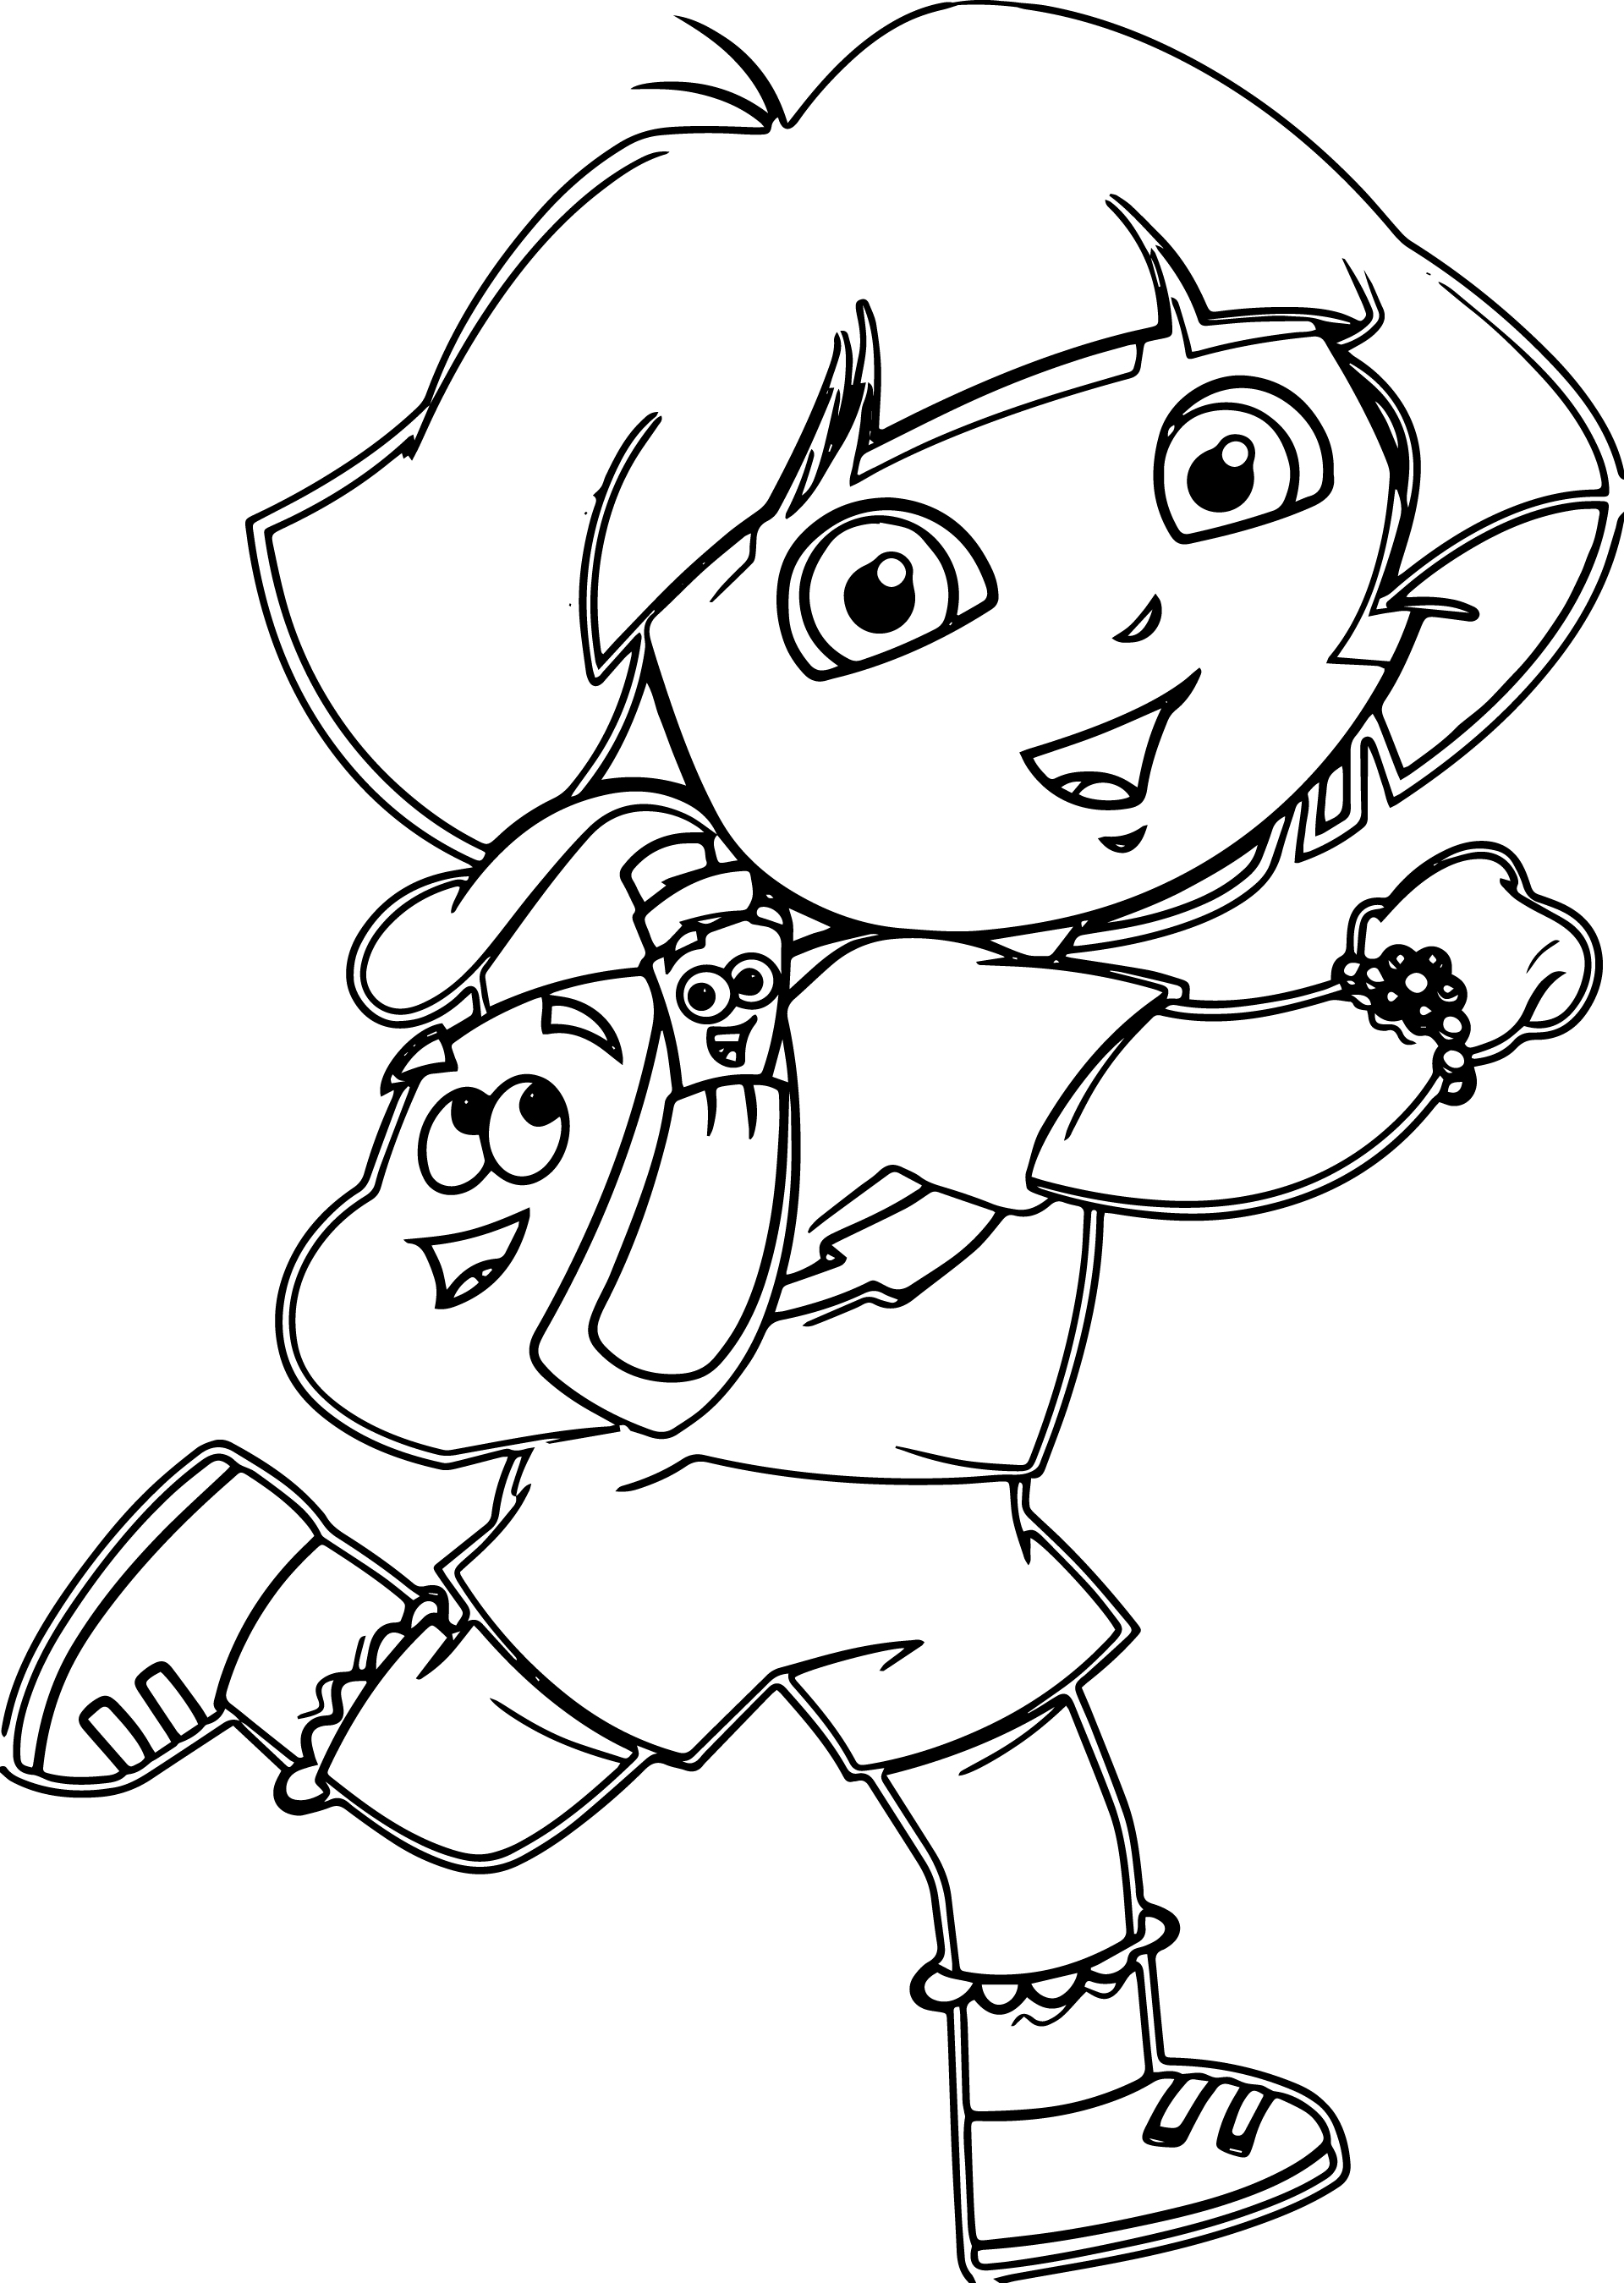 coloring cartoon dora print download dora coloring pages to learn new things coloring dora cartoon